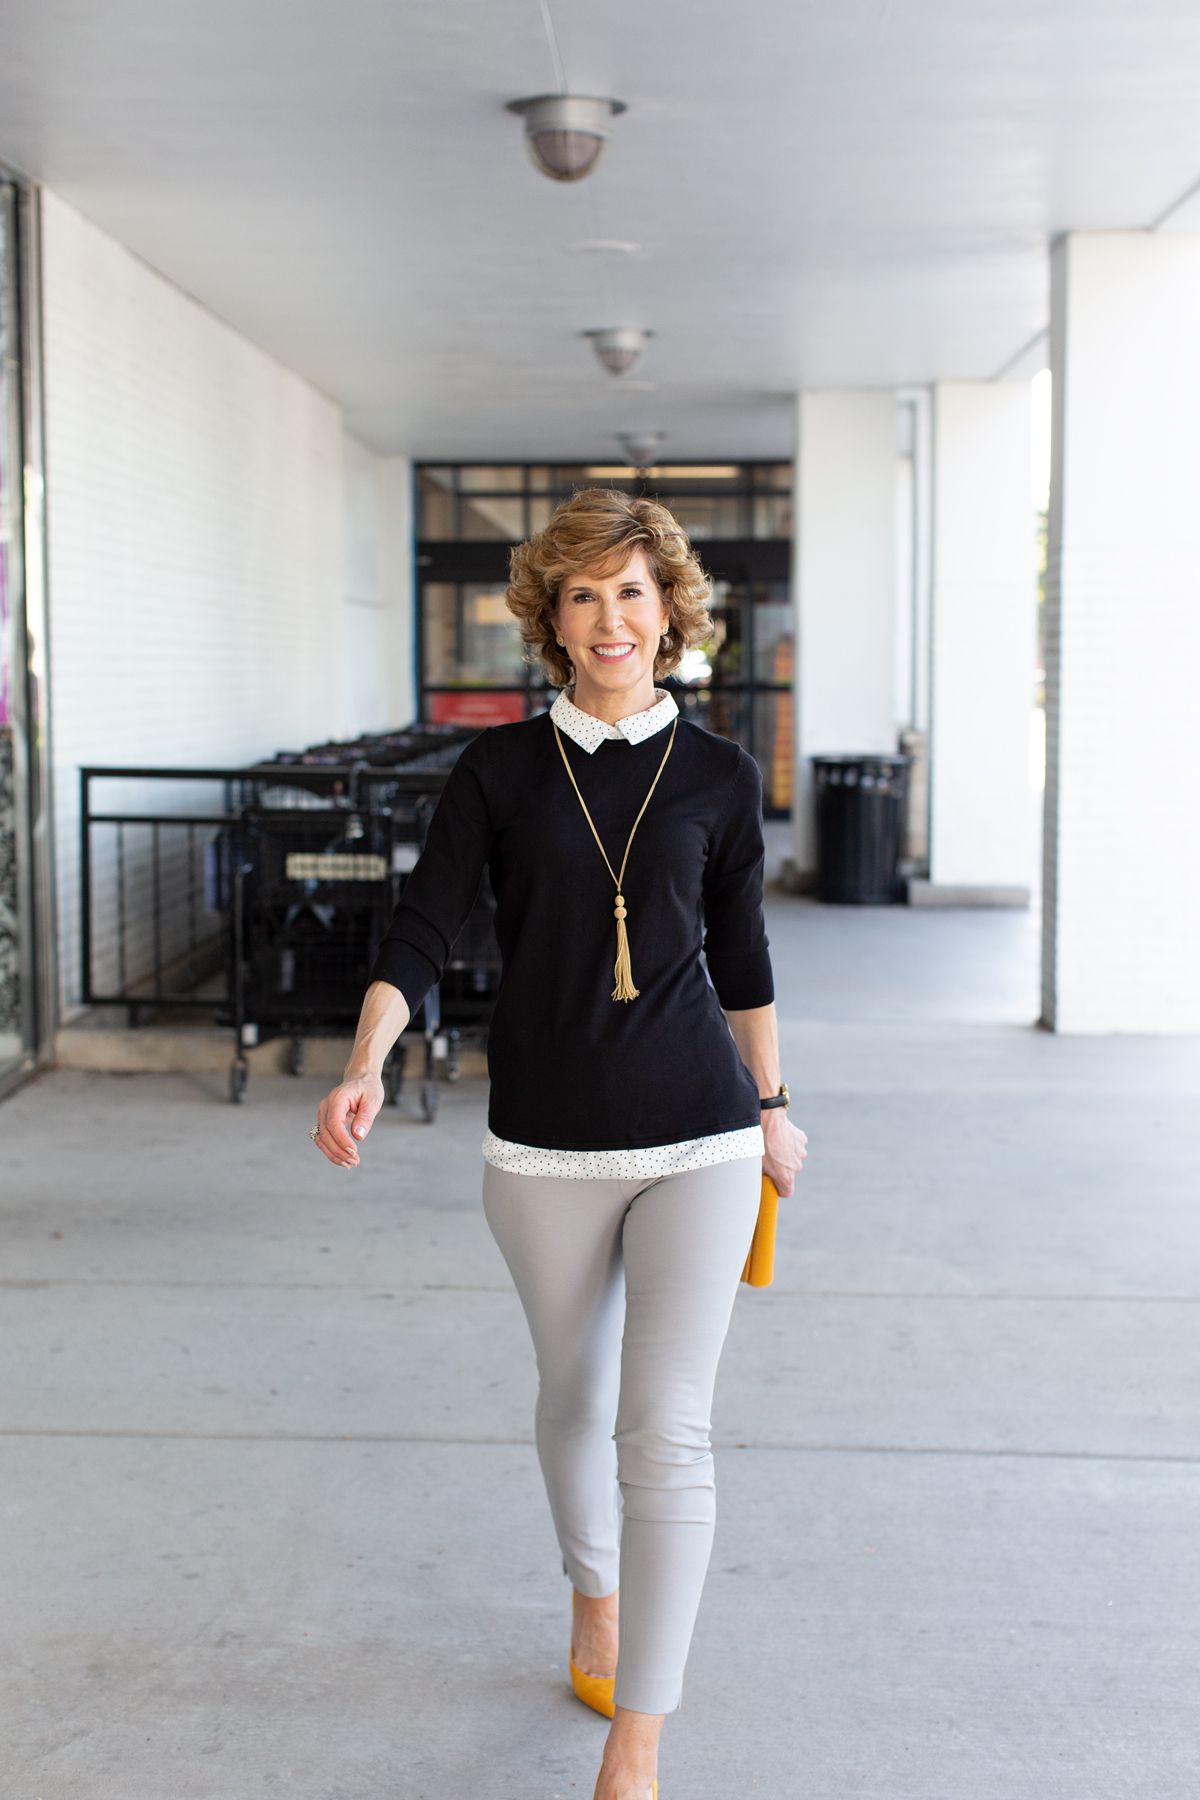 woman in black sweater with yellow shoes and purse walking towards the cameras